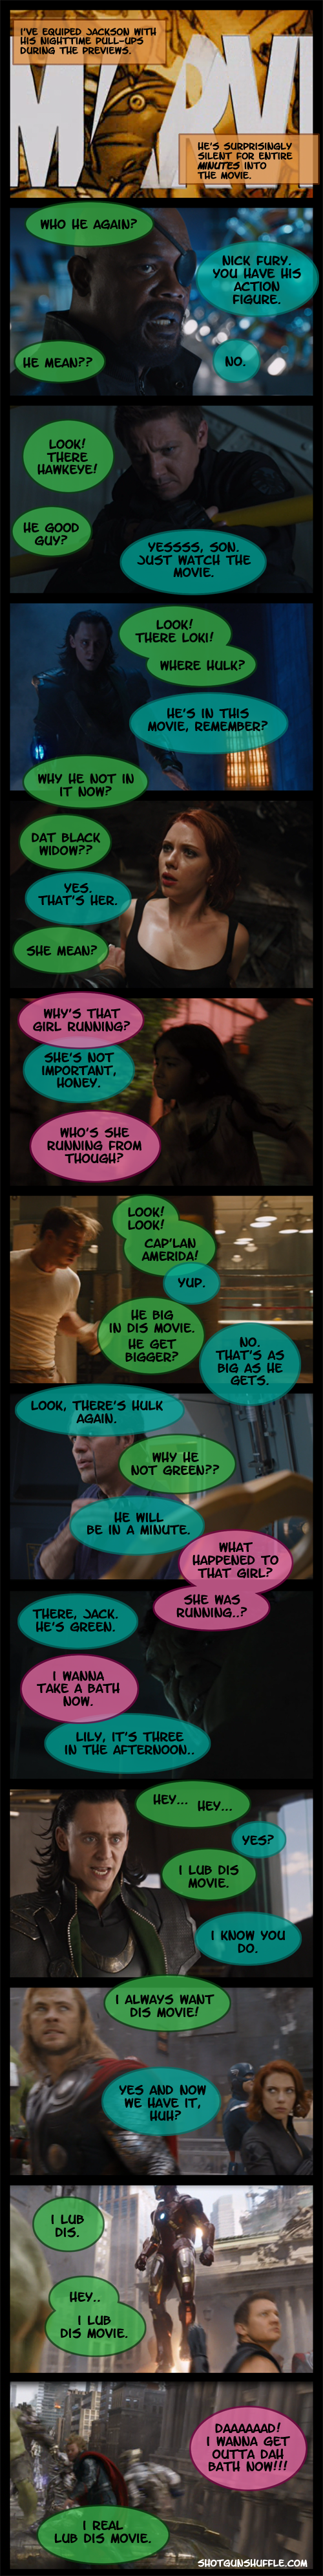 Avengers with a 3 yr old